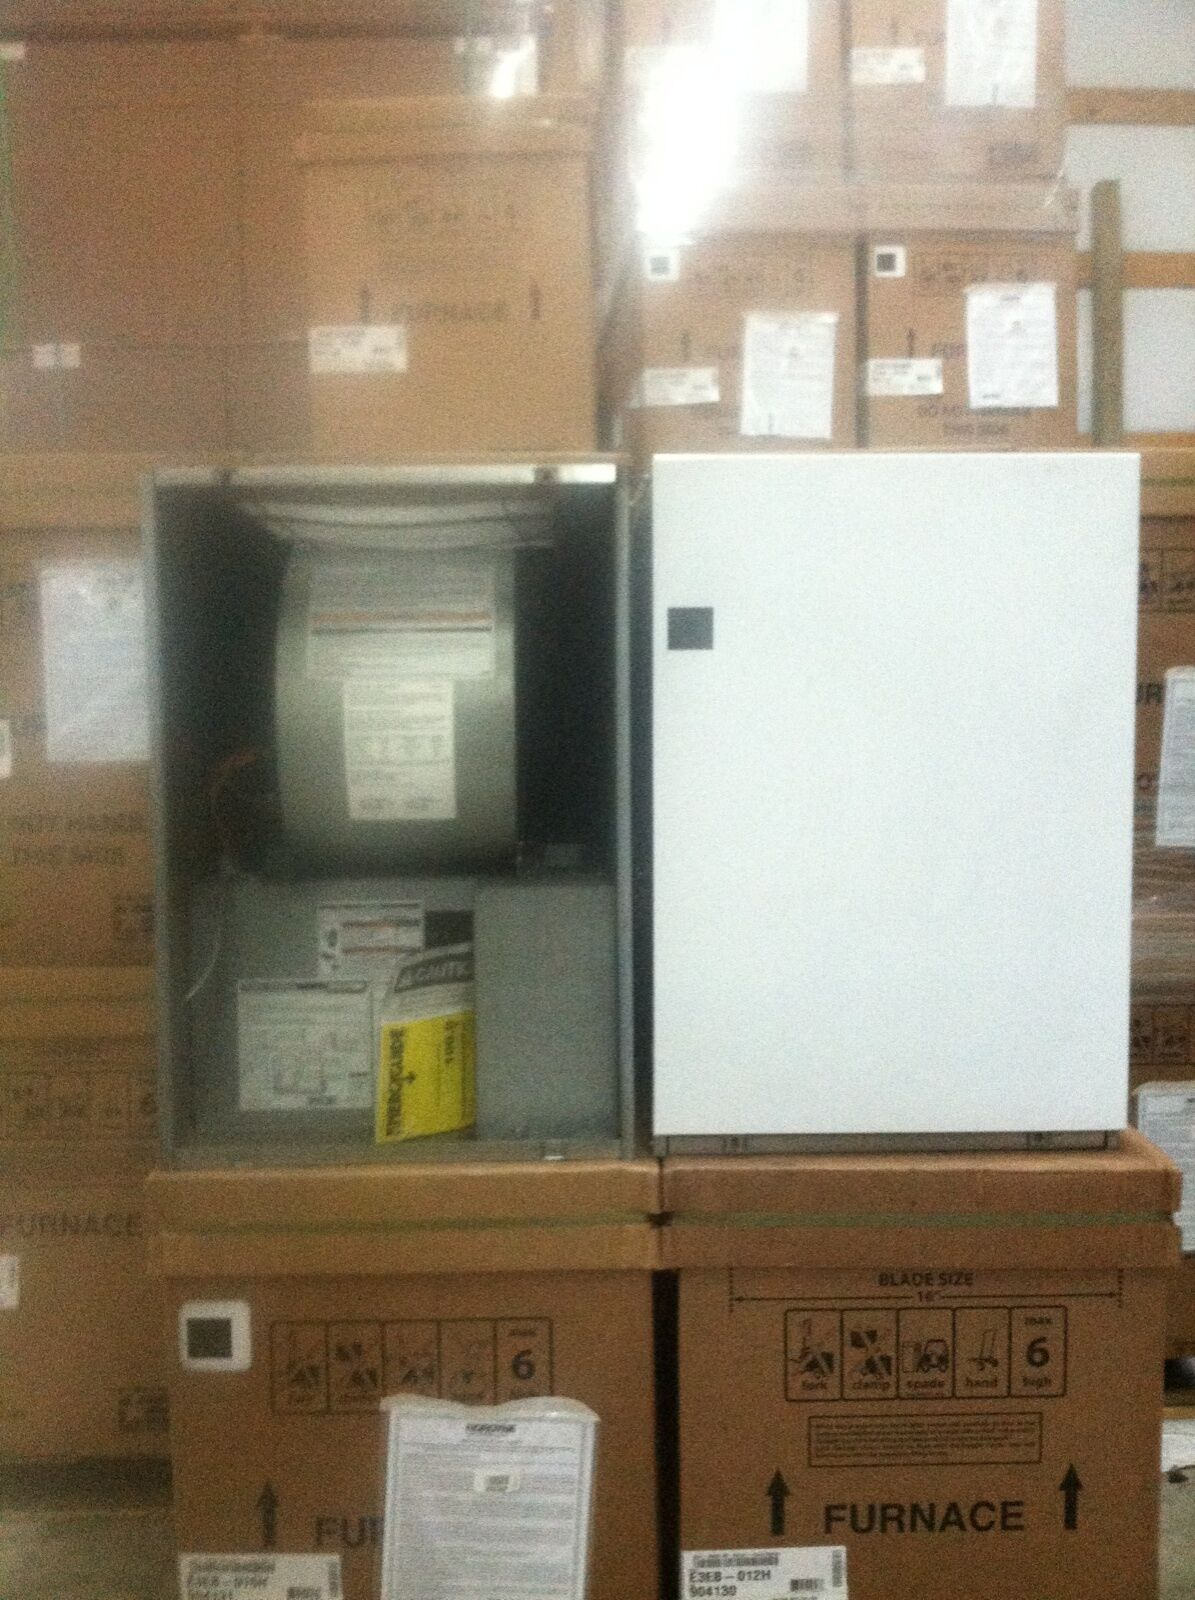 Intertherm Mobile Home Furnace Mgbb 056abfc 06 Electric 15kw Wiring Diagrams Description Manual Repair Guide Ohio Radiography Quinn Supply Brake Together Further Caroldoey Data Schema As Well Circuit Koolseal D Er